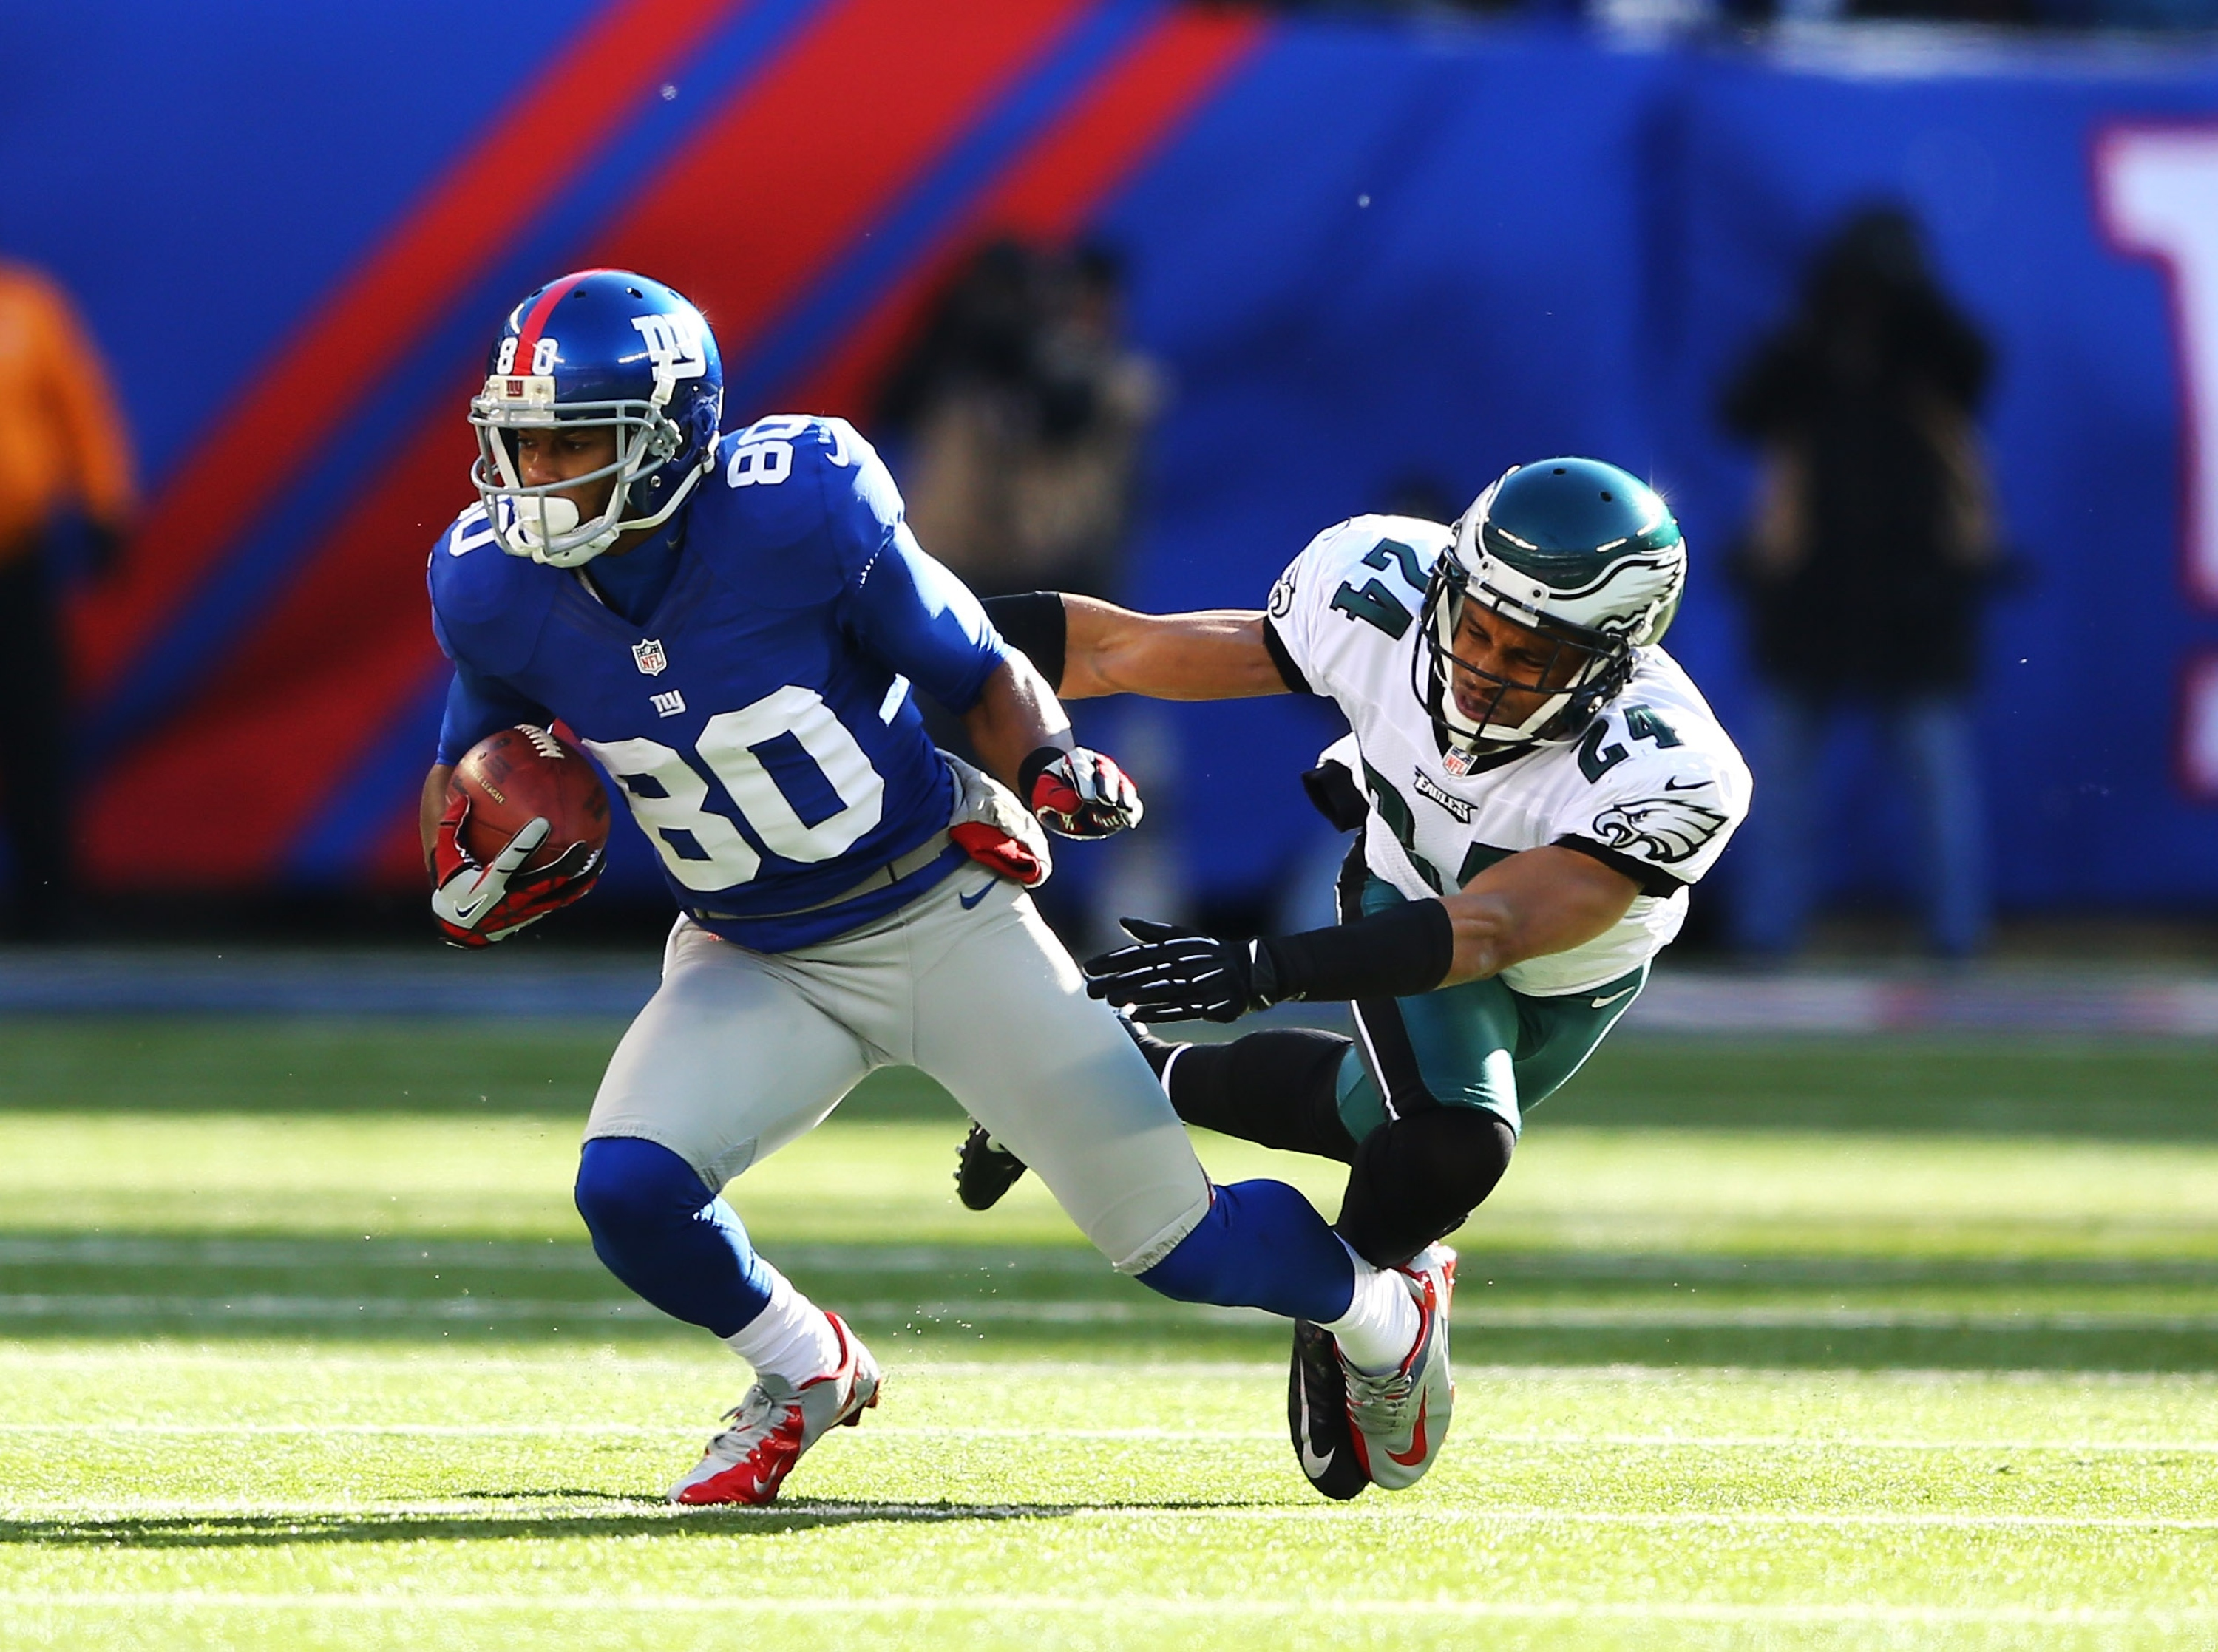 Victor Cruz runs away from Eagles CB Nnamdi Asomugha in 2012. (Getty)